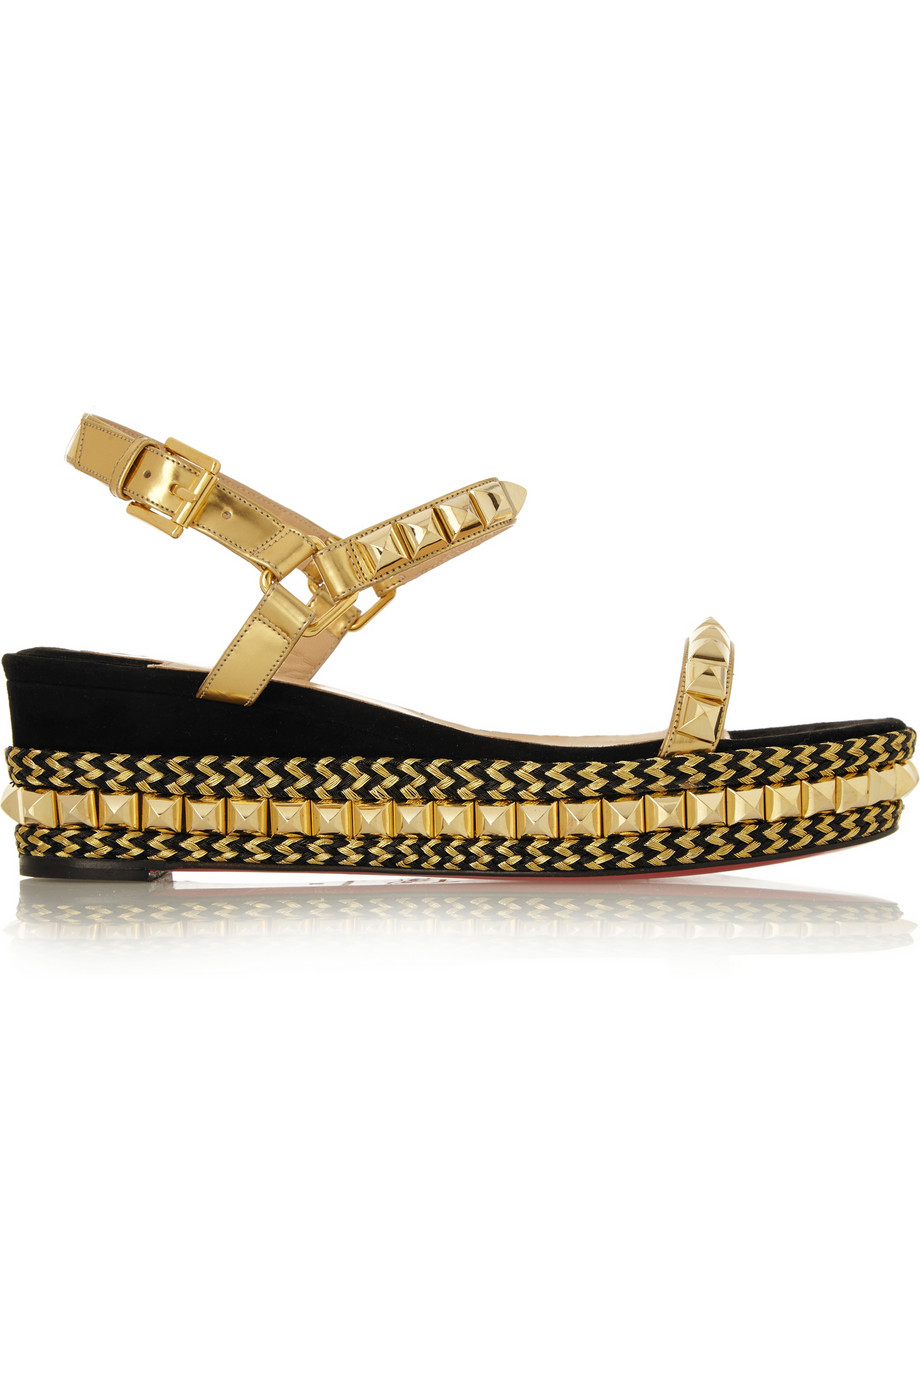 Christian louboutin Cataclou 60 Embellished Suede And Leather ...